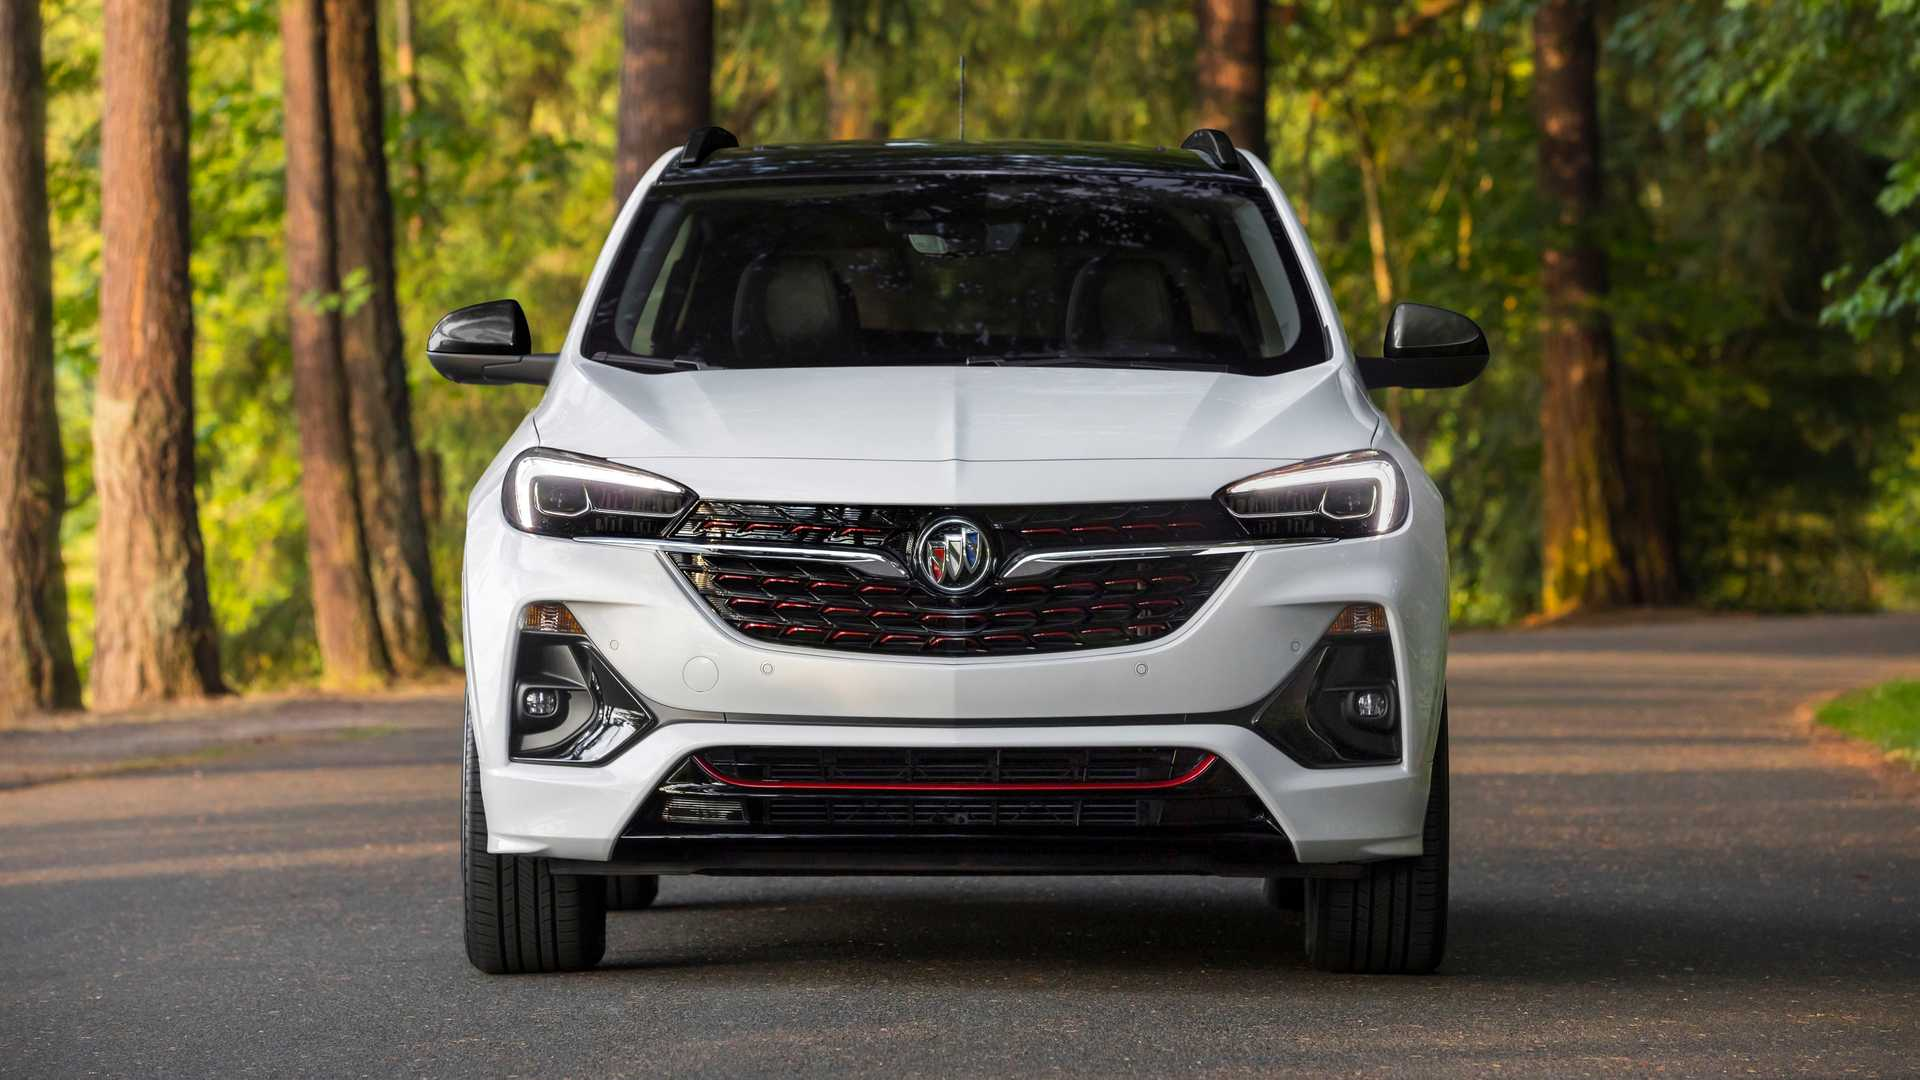 2020 Buick Encore Gx Makes Up To 155 Hp Gets Sport Touring Pack